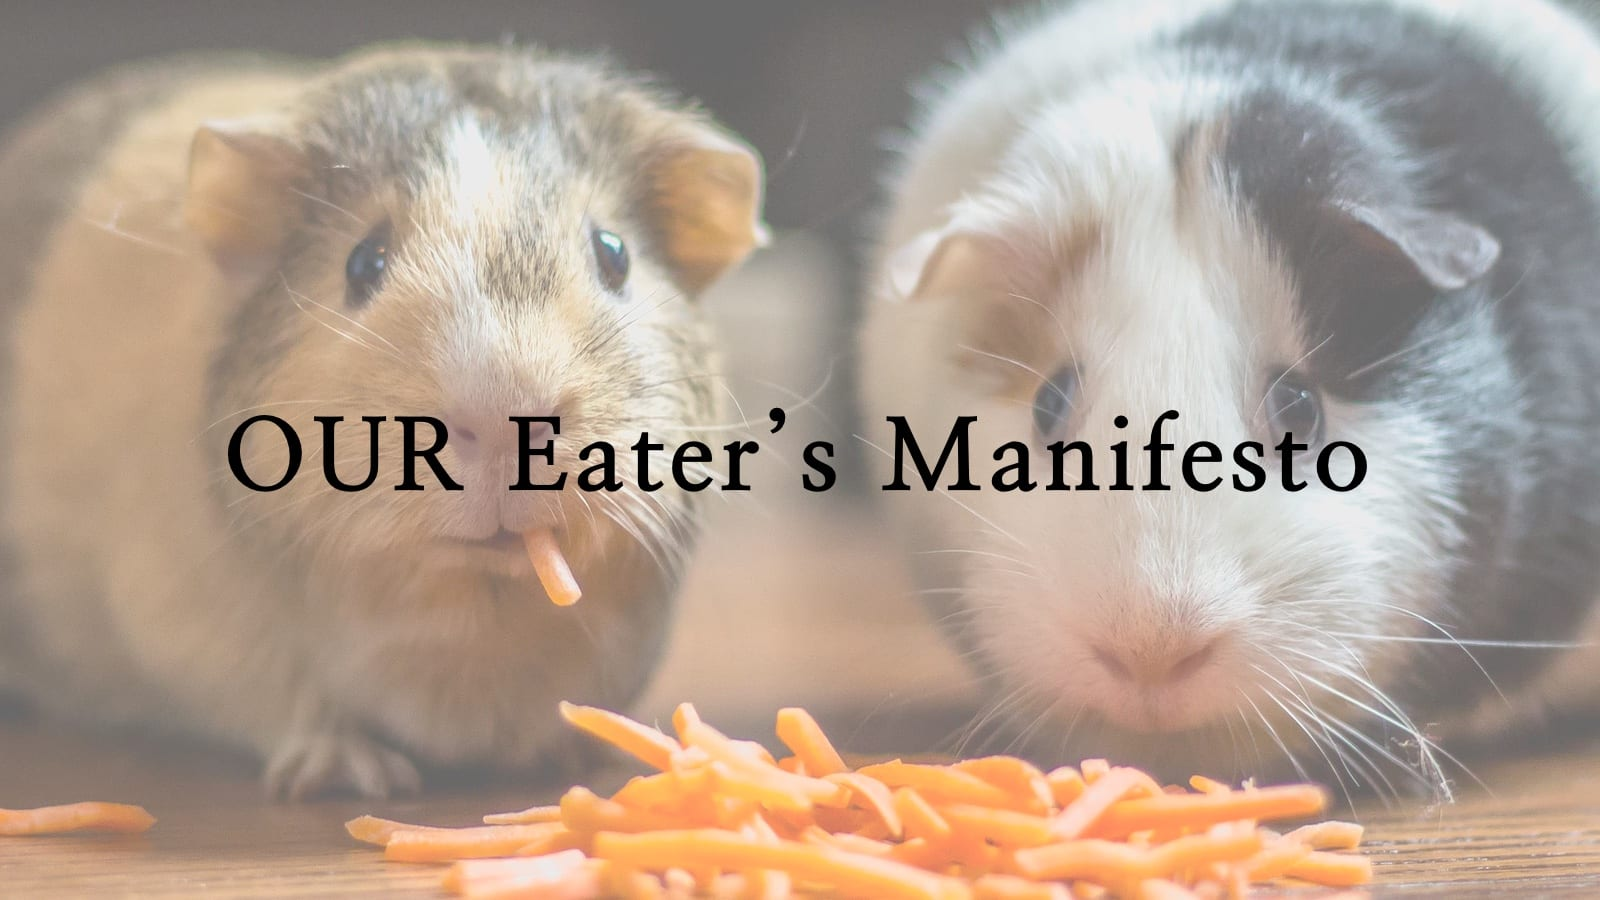 OUR Eater's Manifesto